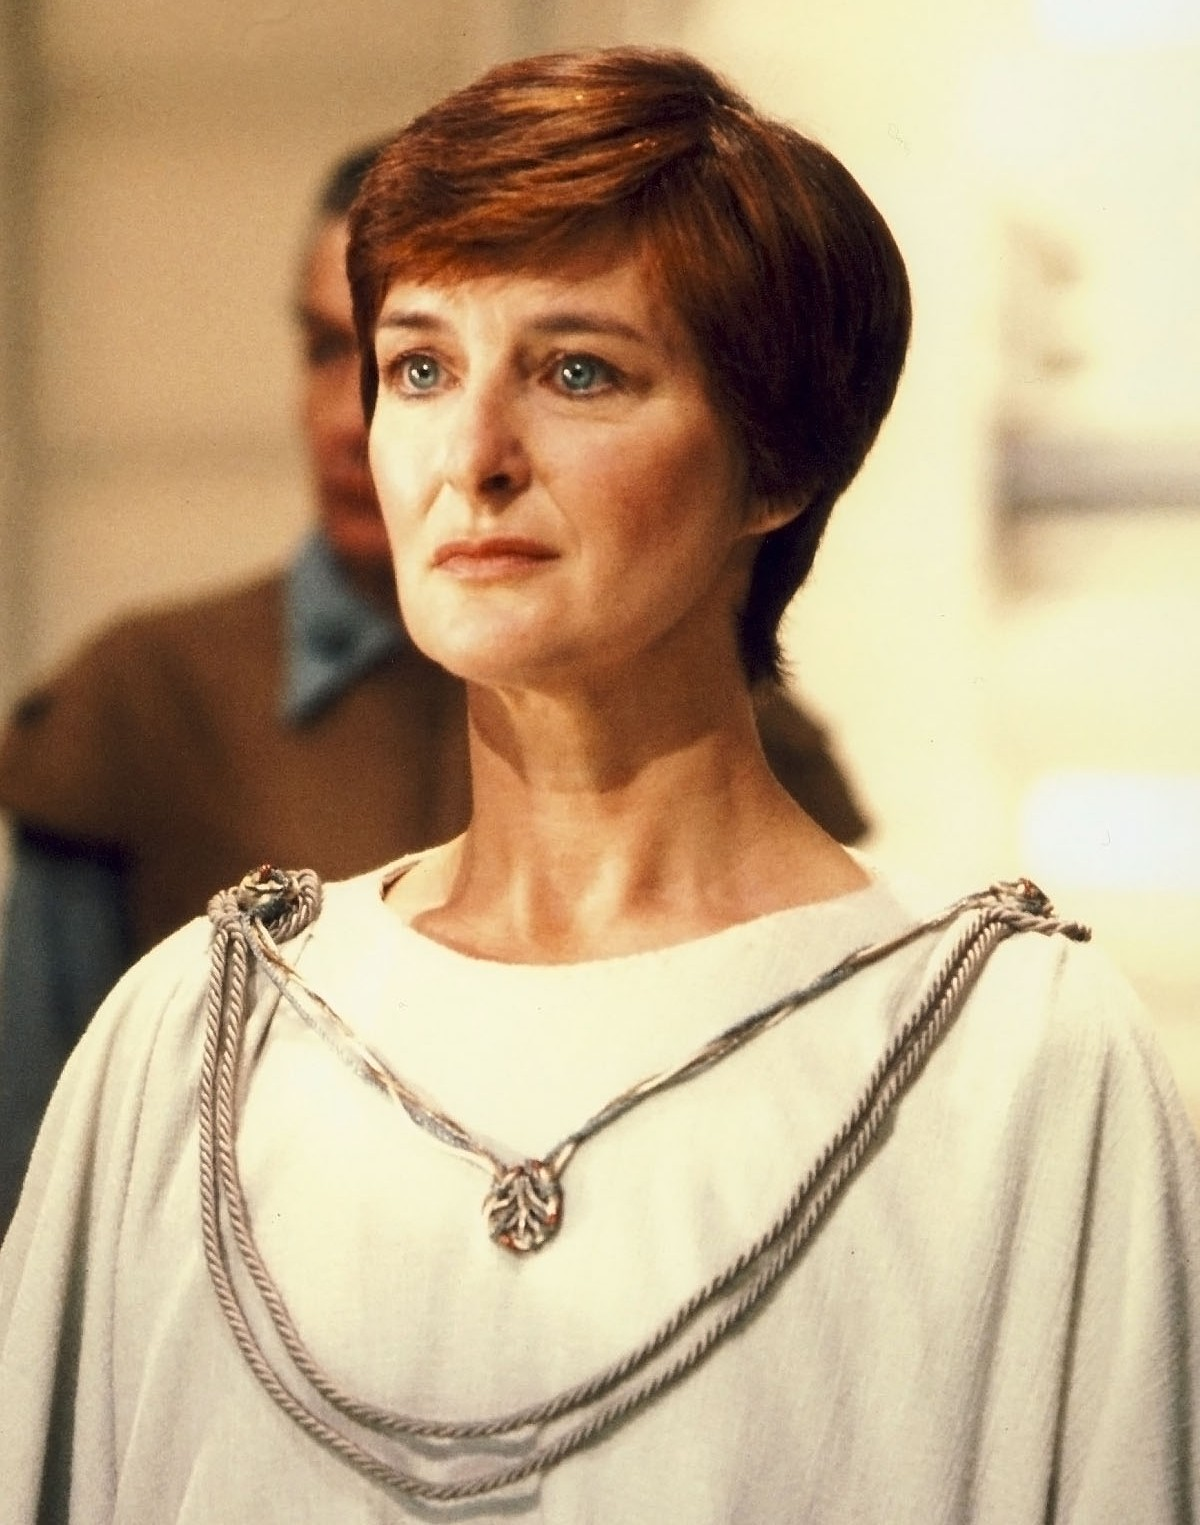 Mon Mothma/Legends